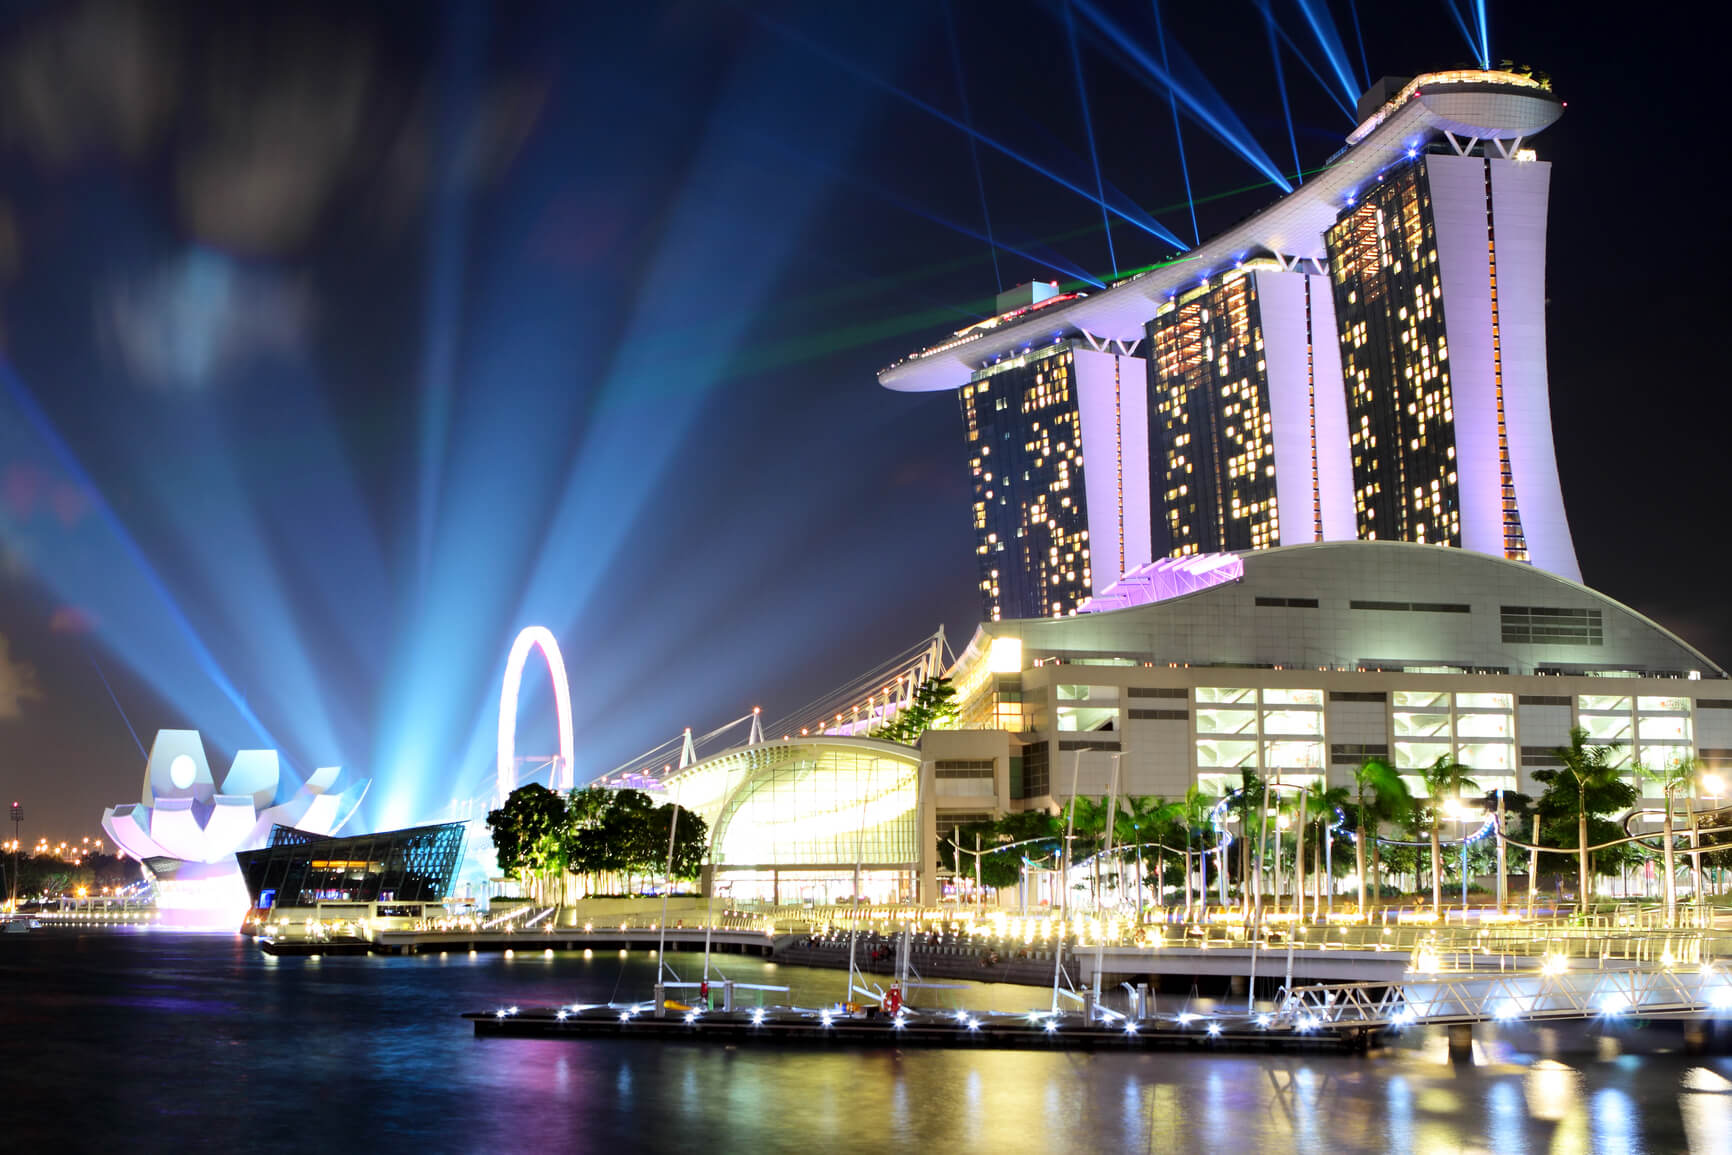 Non-stop from Perth, Australia to Singapore for only $556 AUD roundtrip (Feb-Apr dates)